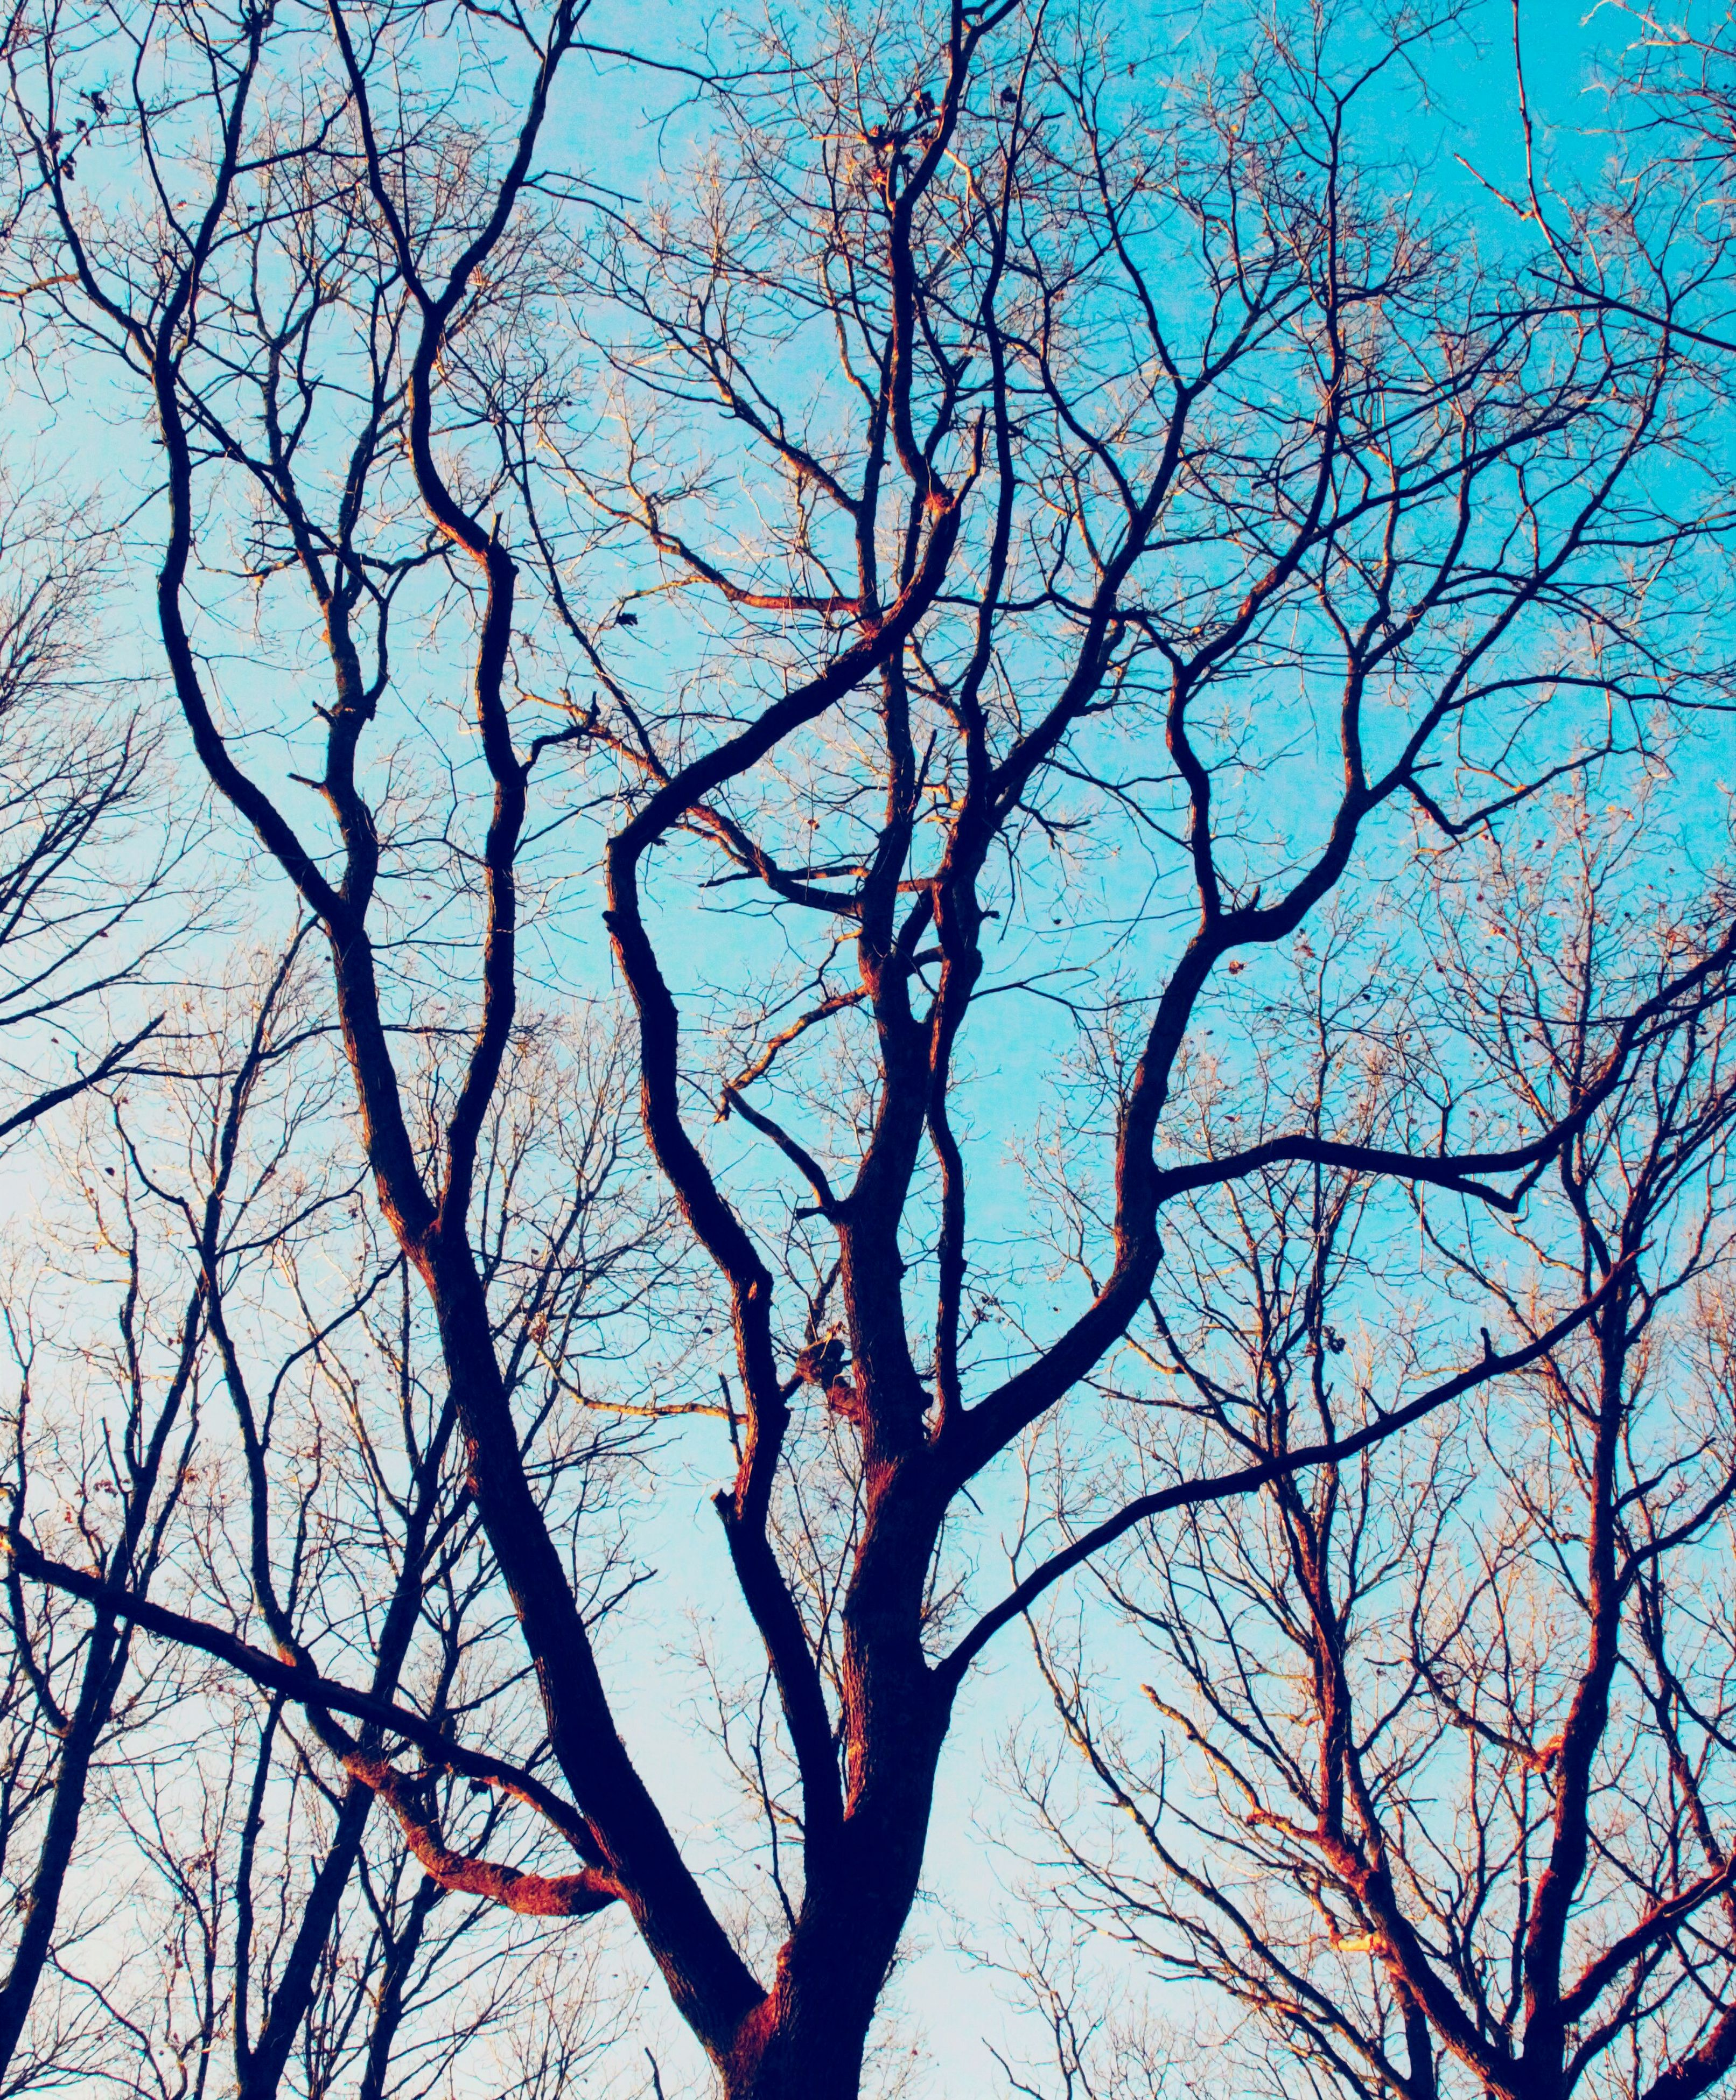 bare tree, branch, tree, low angle view, blue, sky, tranquility, nature, beauty in nature, clear sky, scenics, tree trunk, outdoors, backgrounds, silhouette, no people, day, full frame, tranquil scene, growth